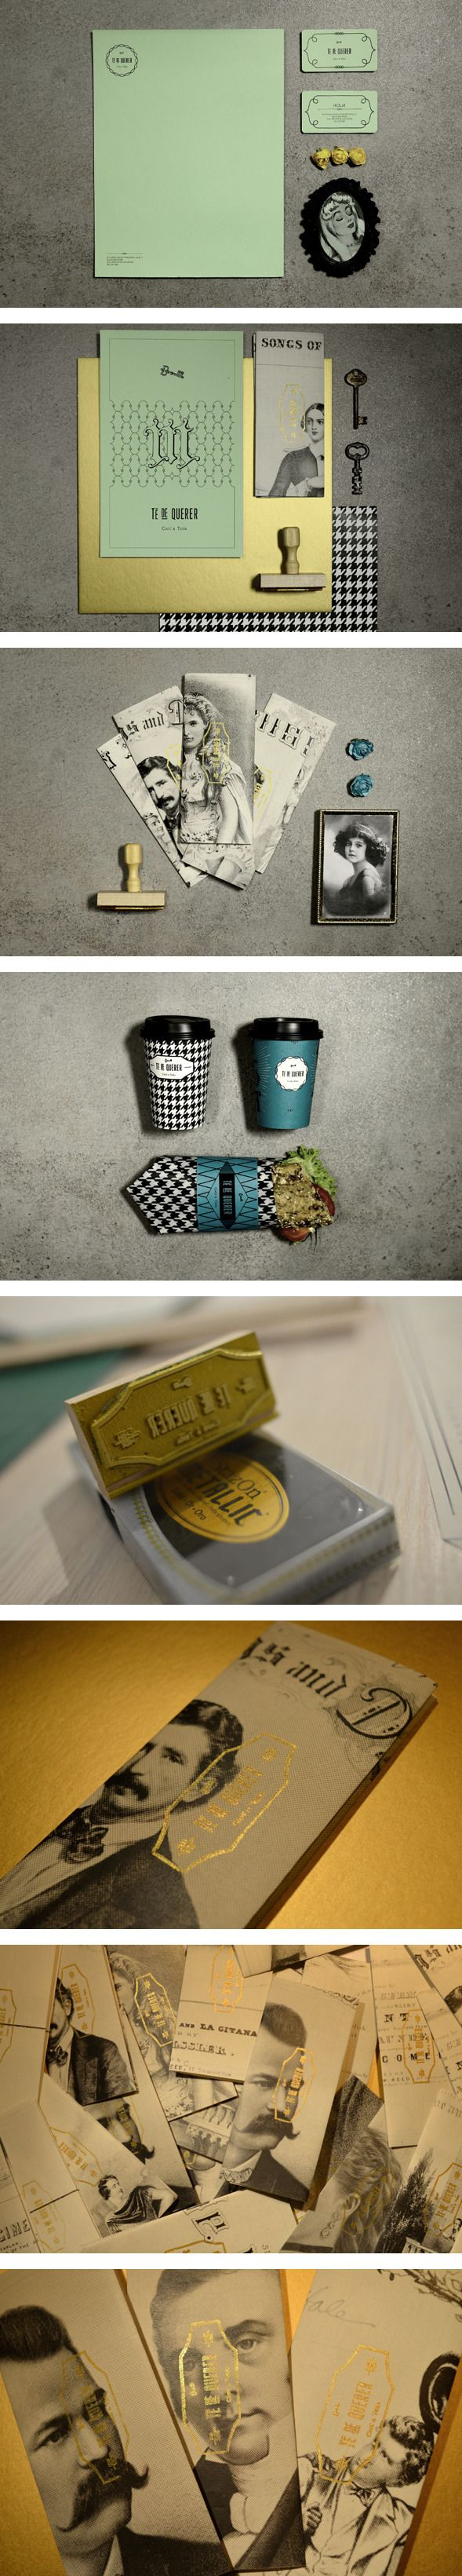 Té de Querer by yy via Behance Let's eat #identity #packaging #branding PD